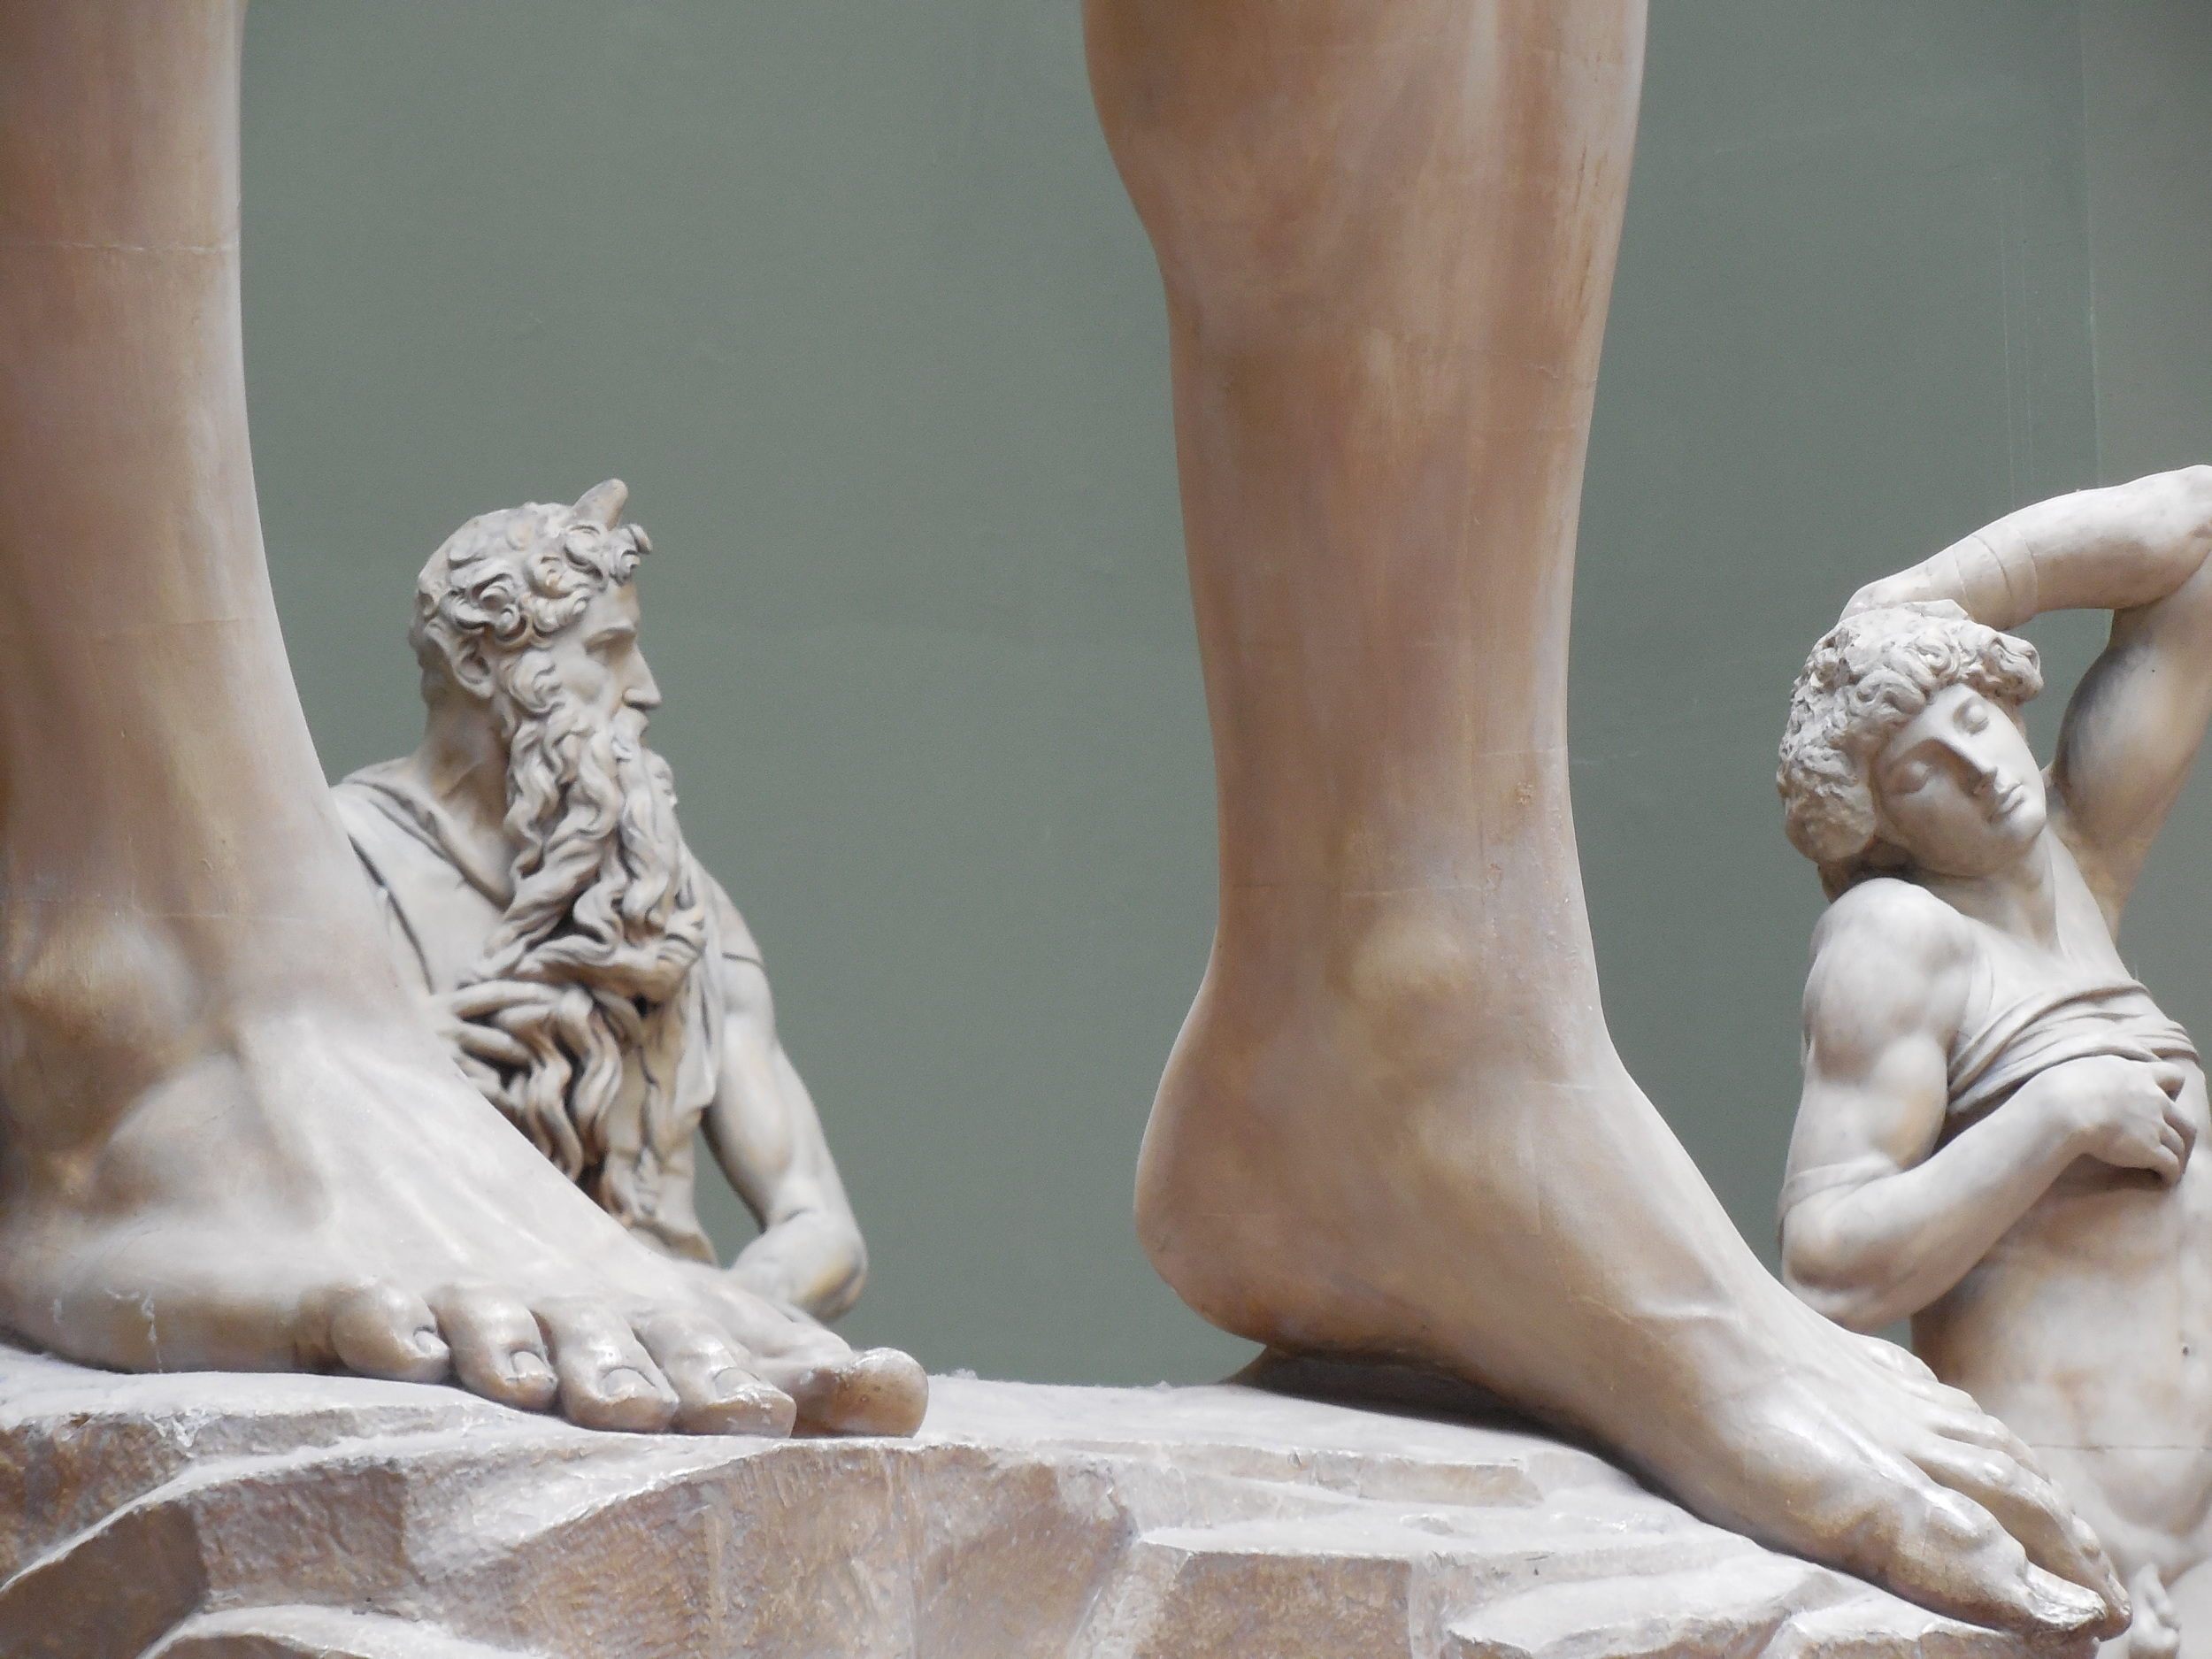 Michelangelo's Moses,Dying Slave and the feet of David